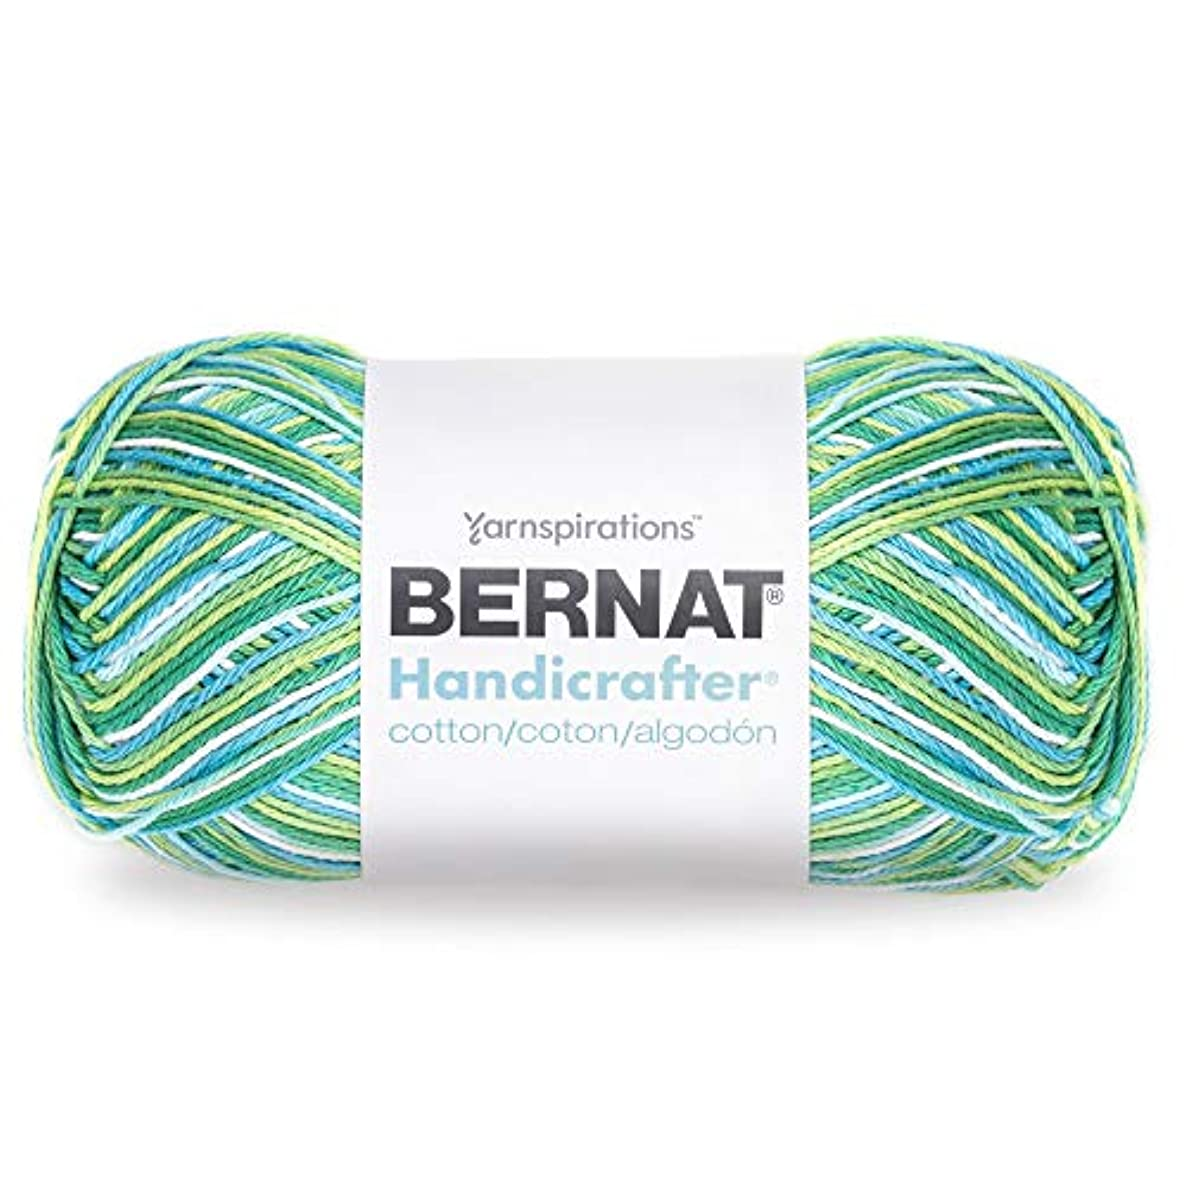 Bernat Handicrafter Cotton Yarn, Gauge 4 Medium Worsted, Emerald Energy